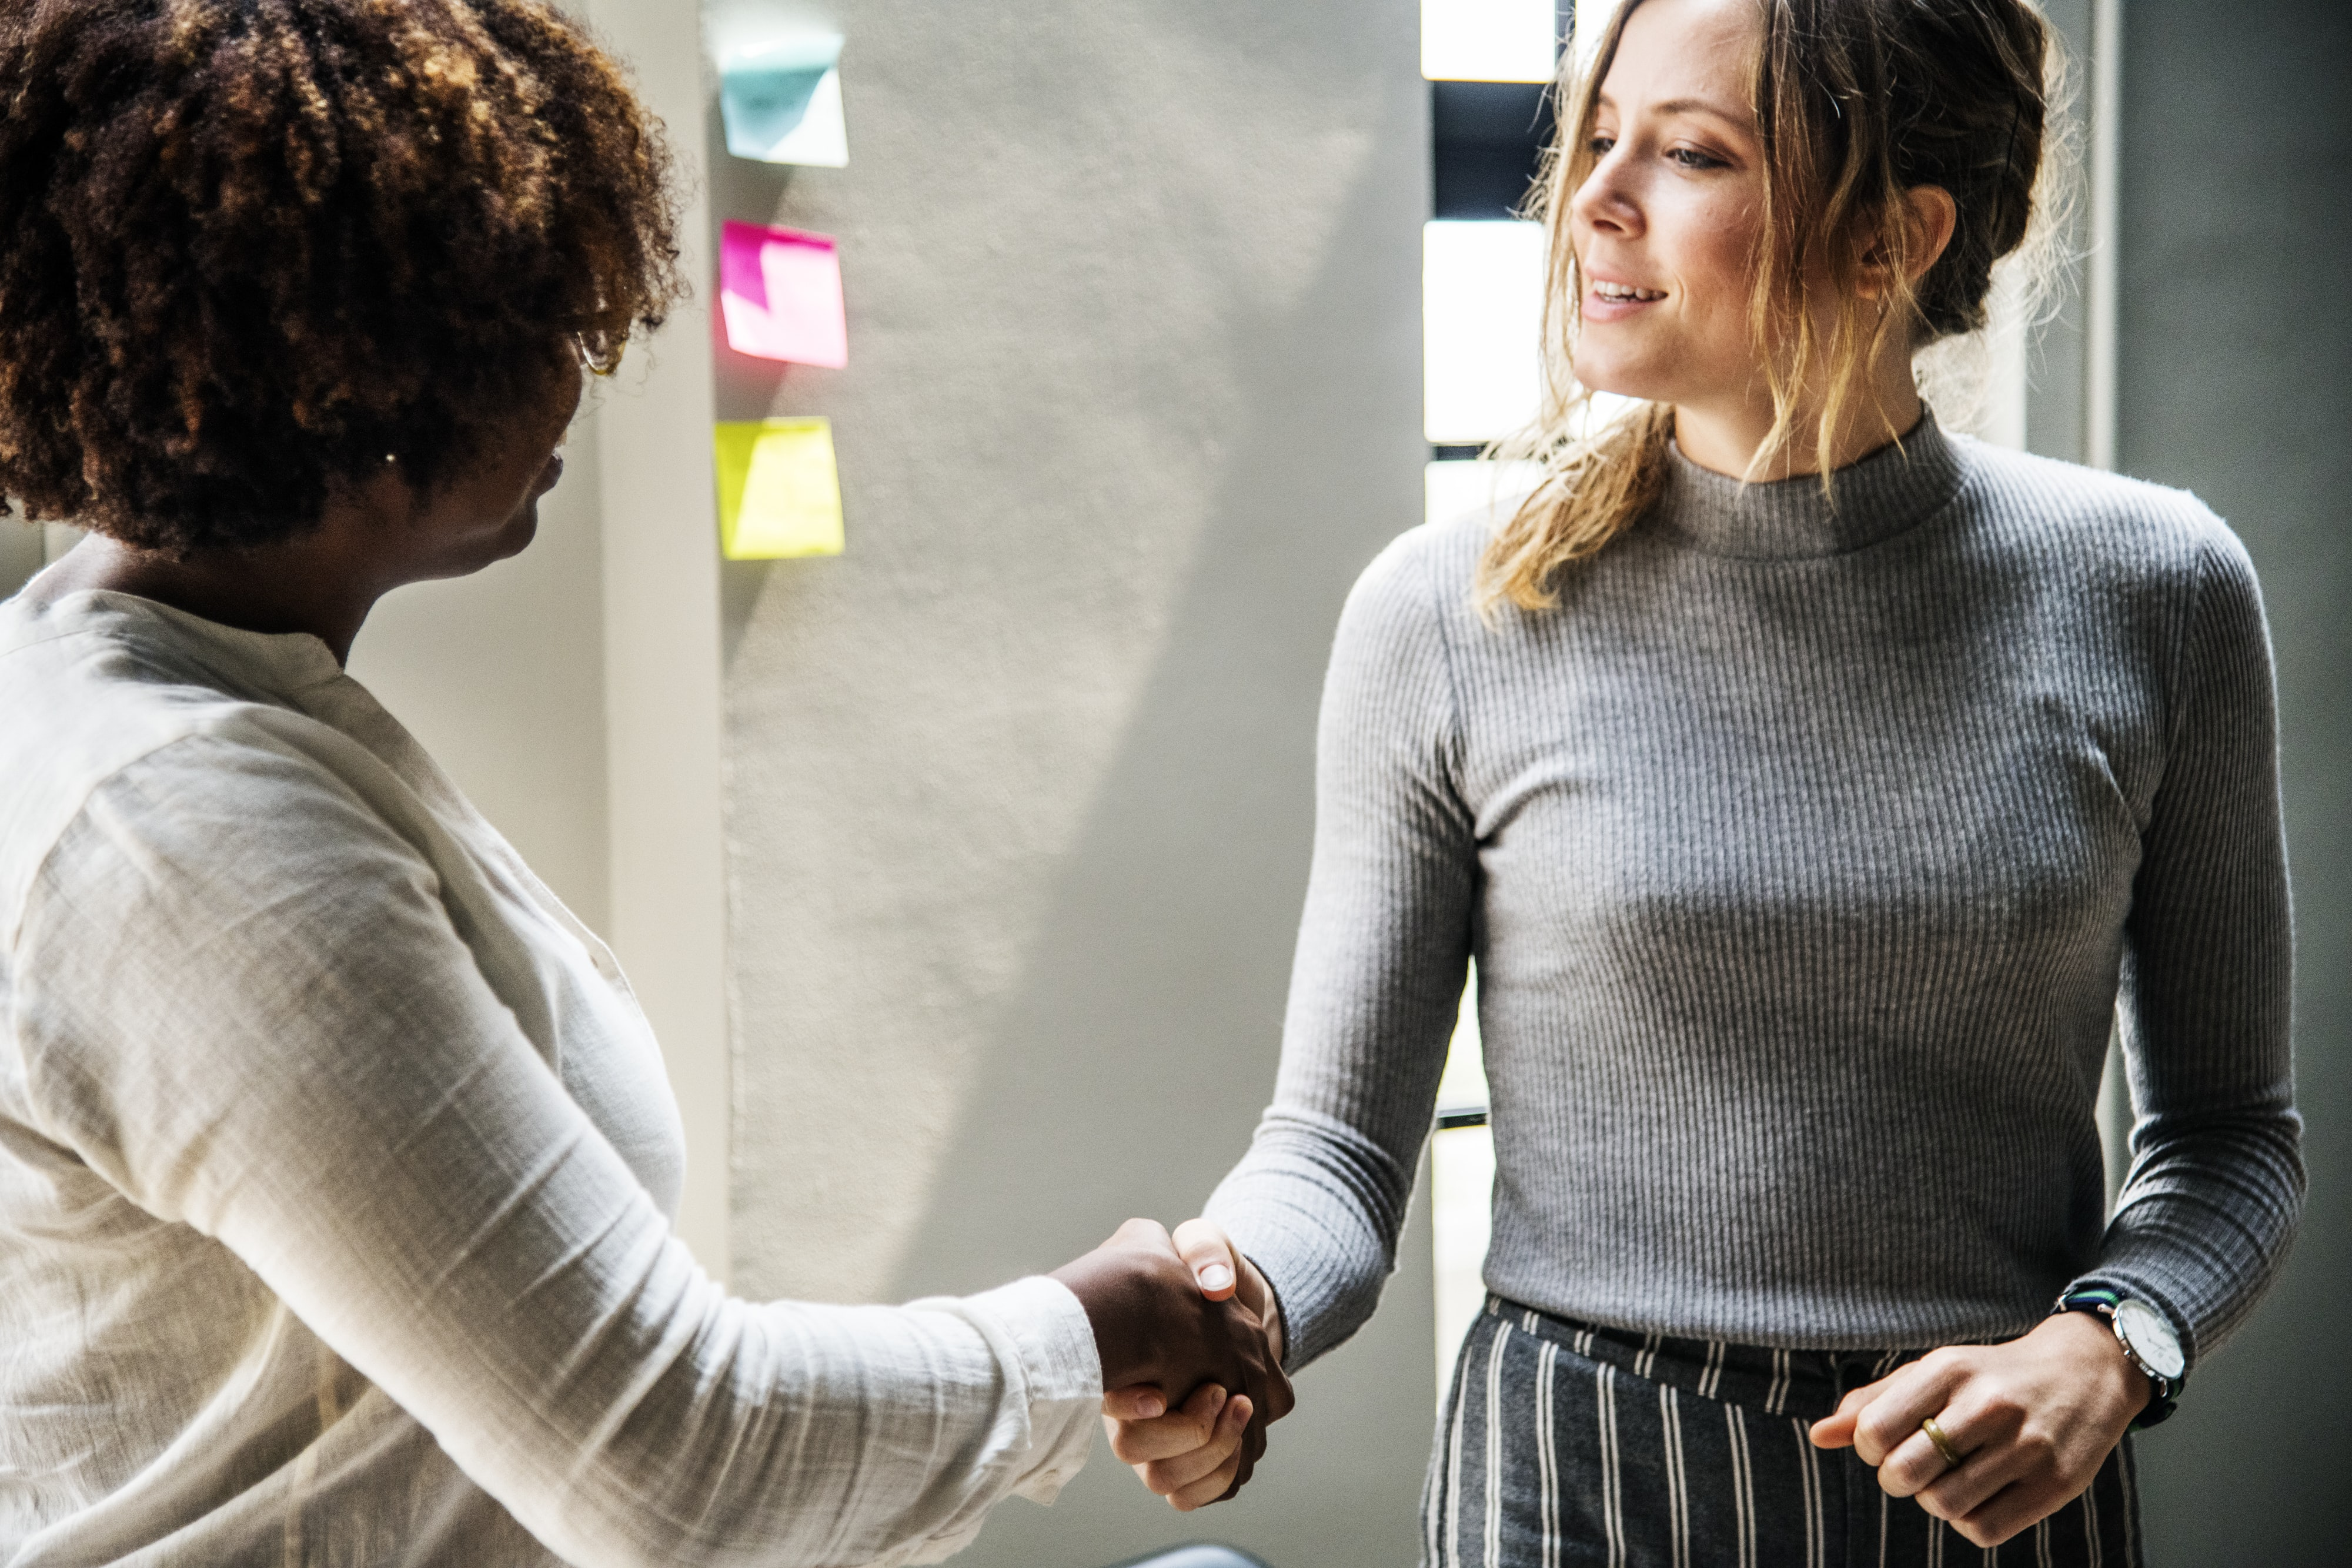 woman shaking hands with another woman